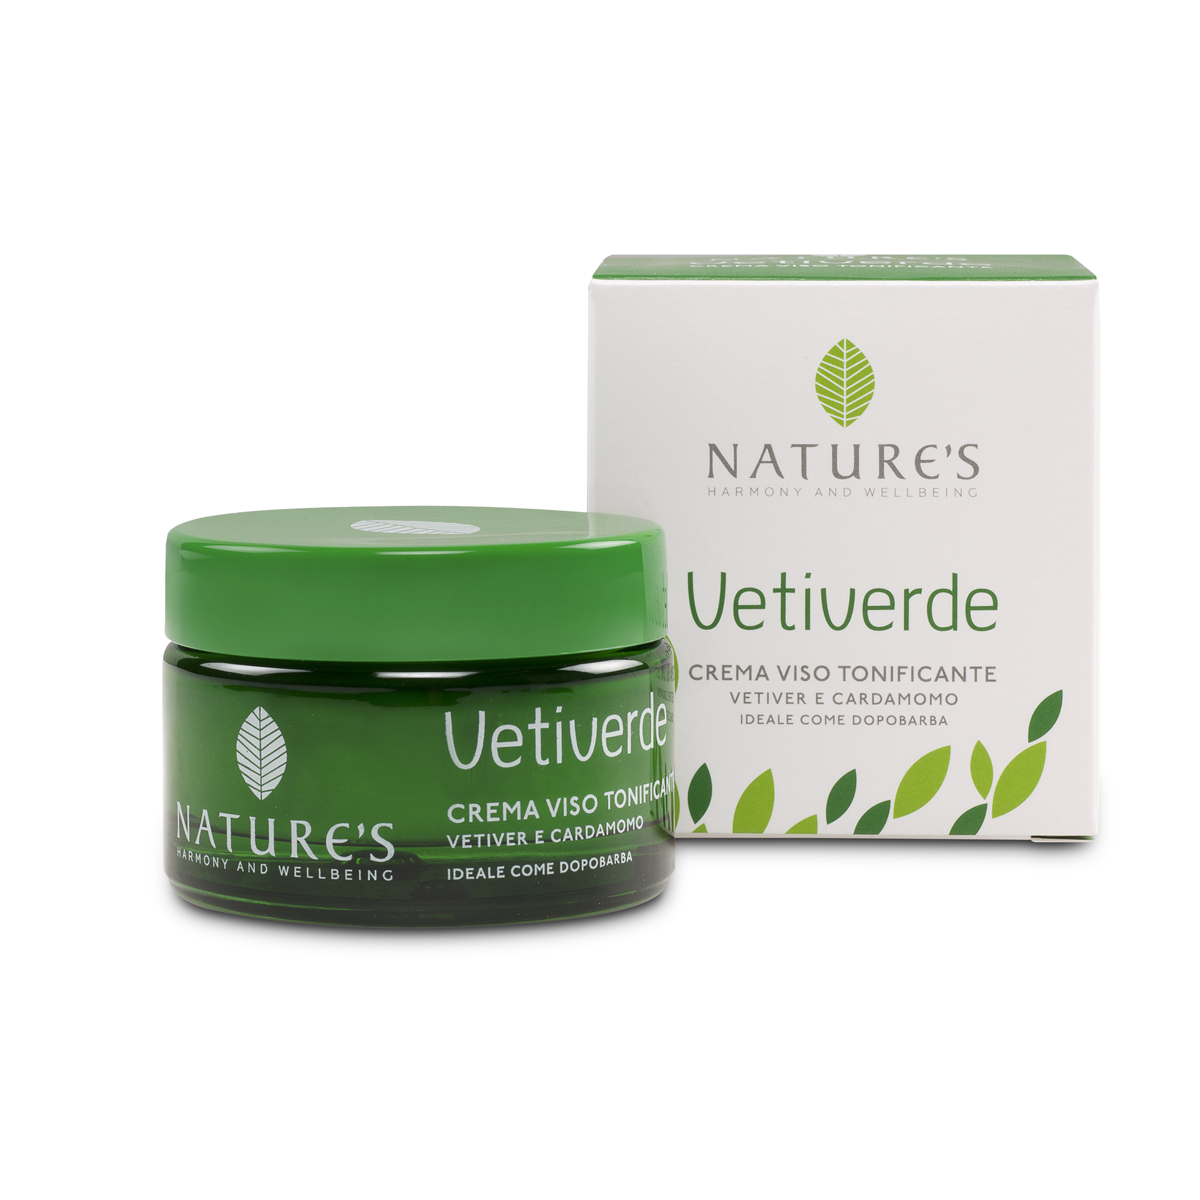 Crema Viso Tonificante Vetiverde 50 ml